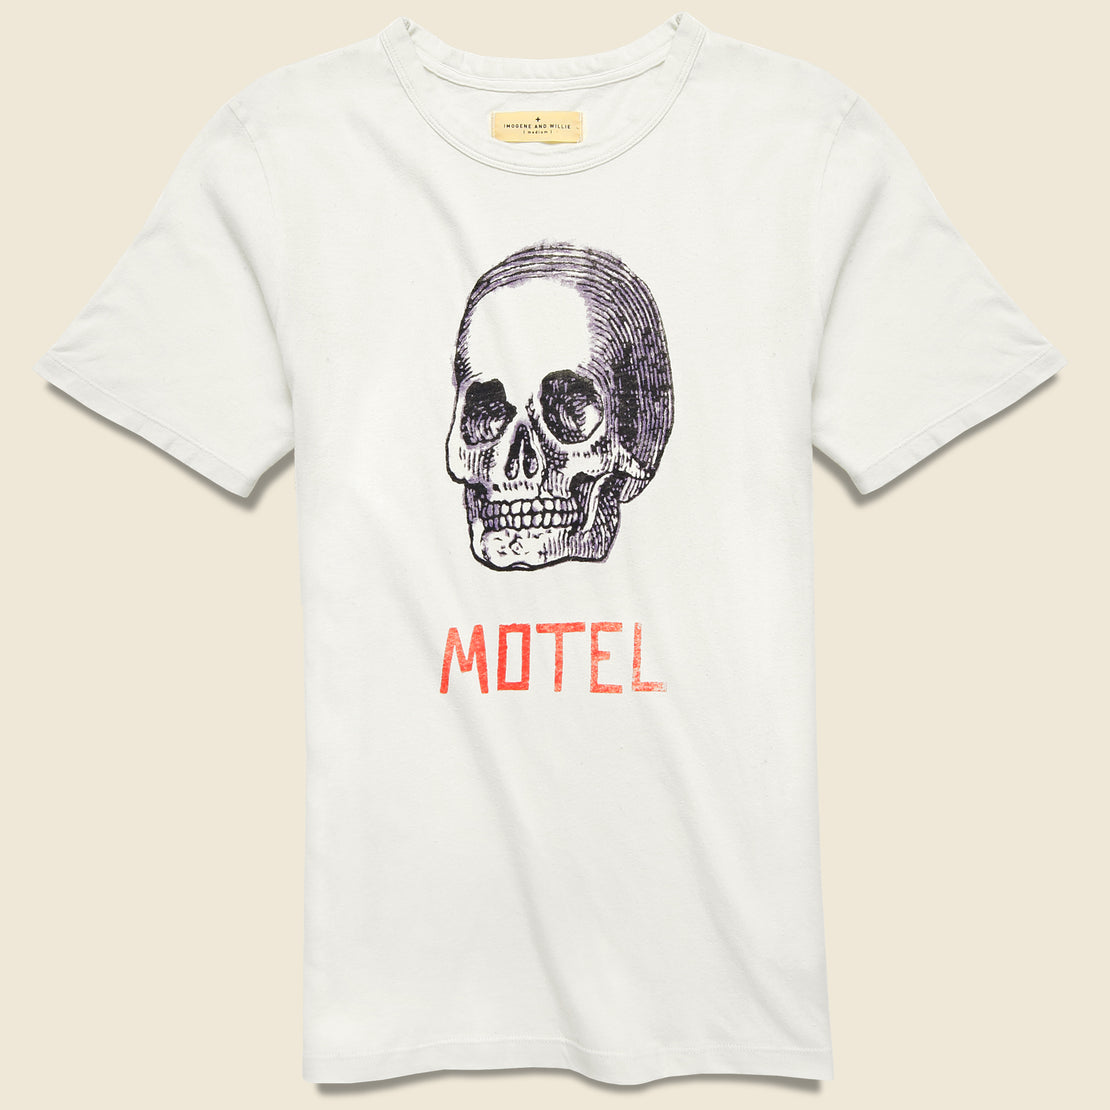 Imogene + Willie Motel Tee - White